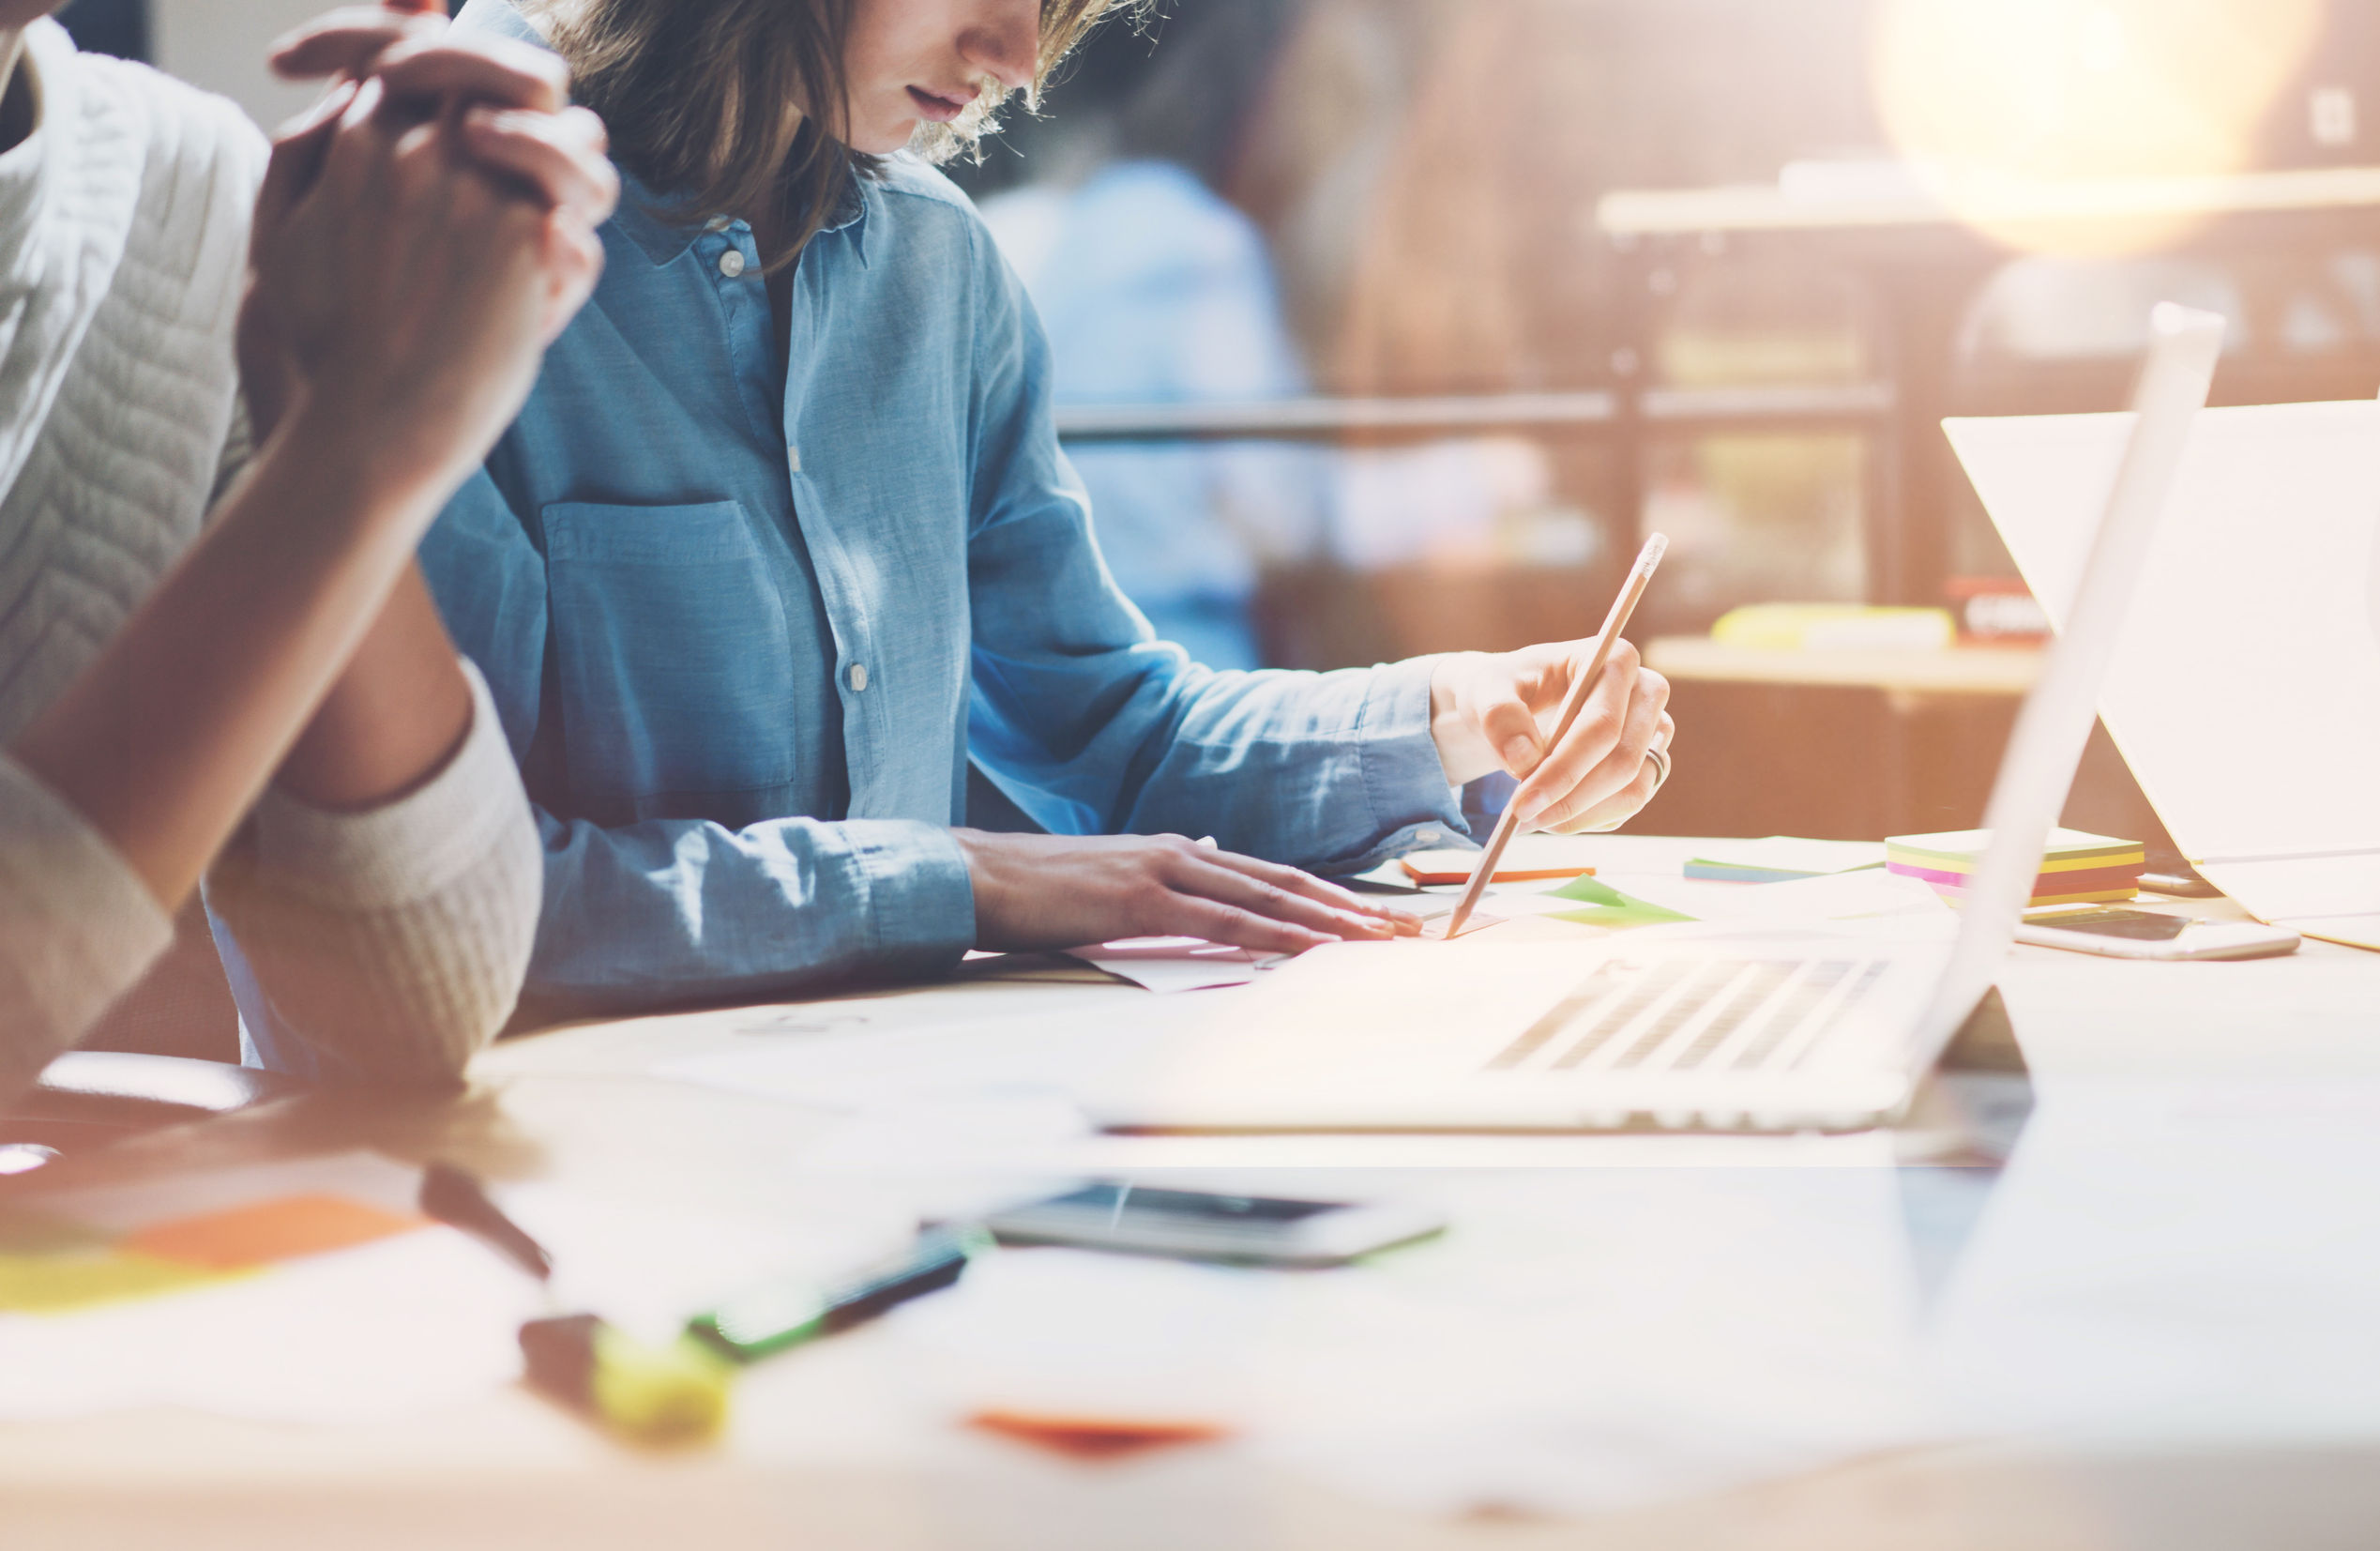 4 Types of Content That Work in Any Marketing Plan